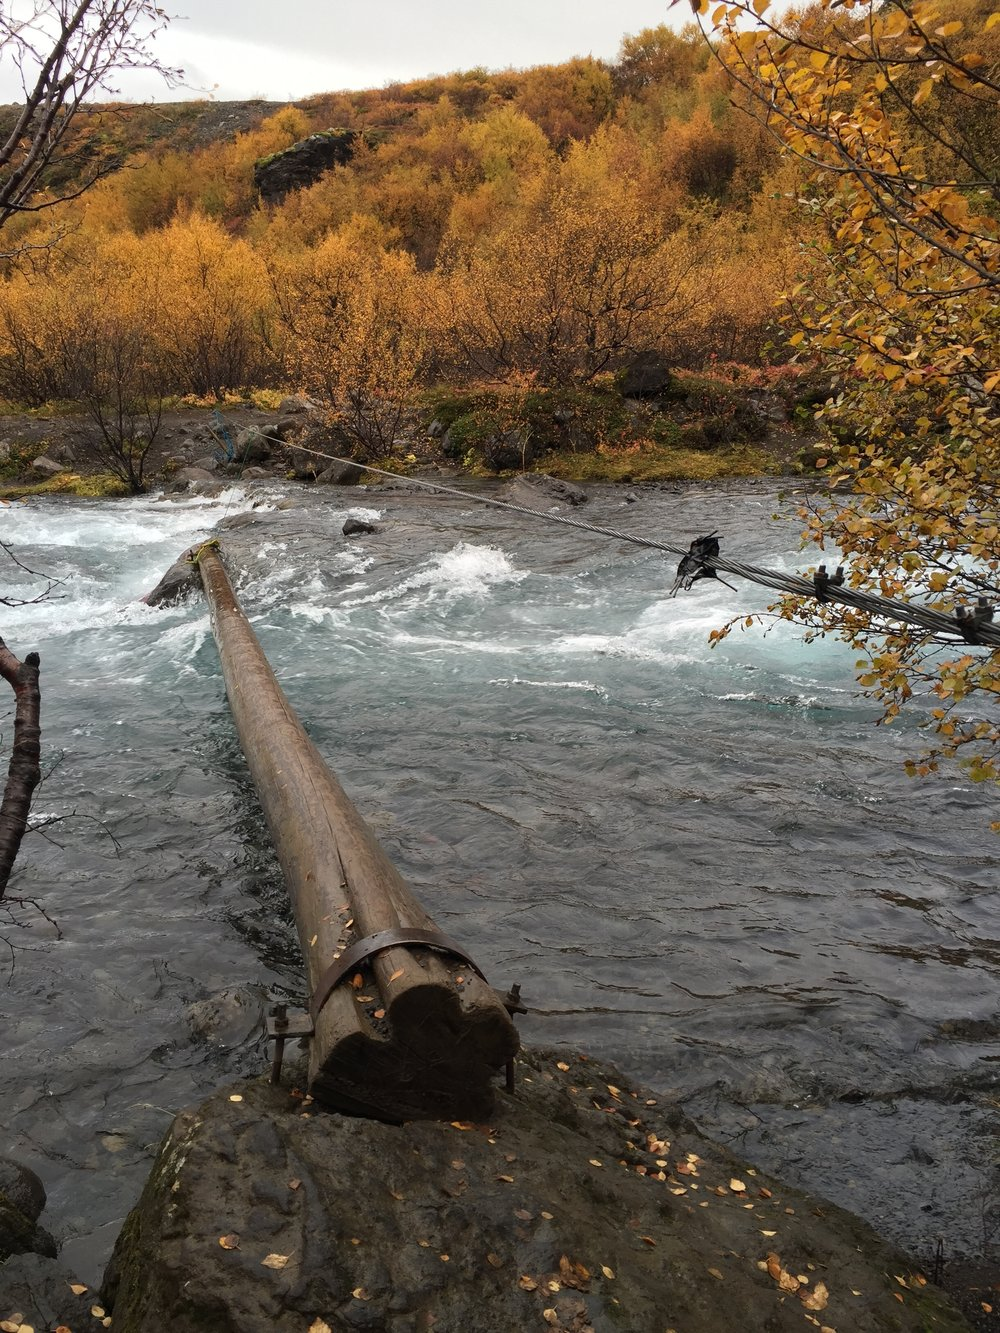 Our way across the river coming back. That transition from wood to rock is where you need to dip under.